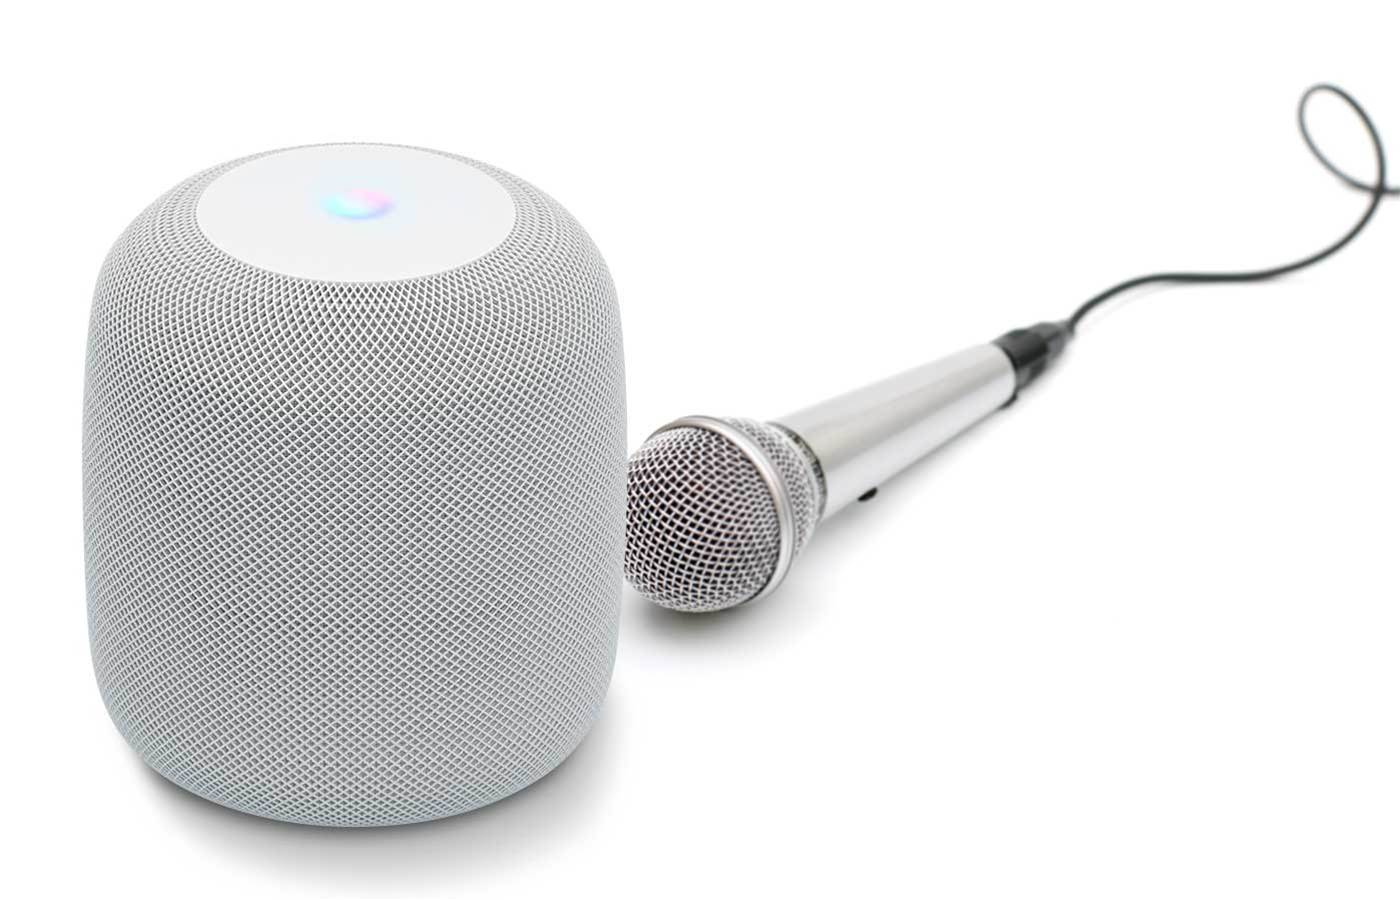 Something is bugging me about Apple, Google and Amazon's smart speakers